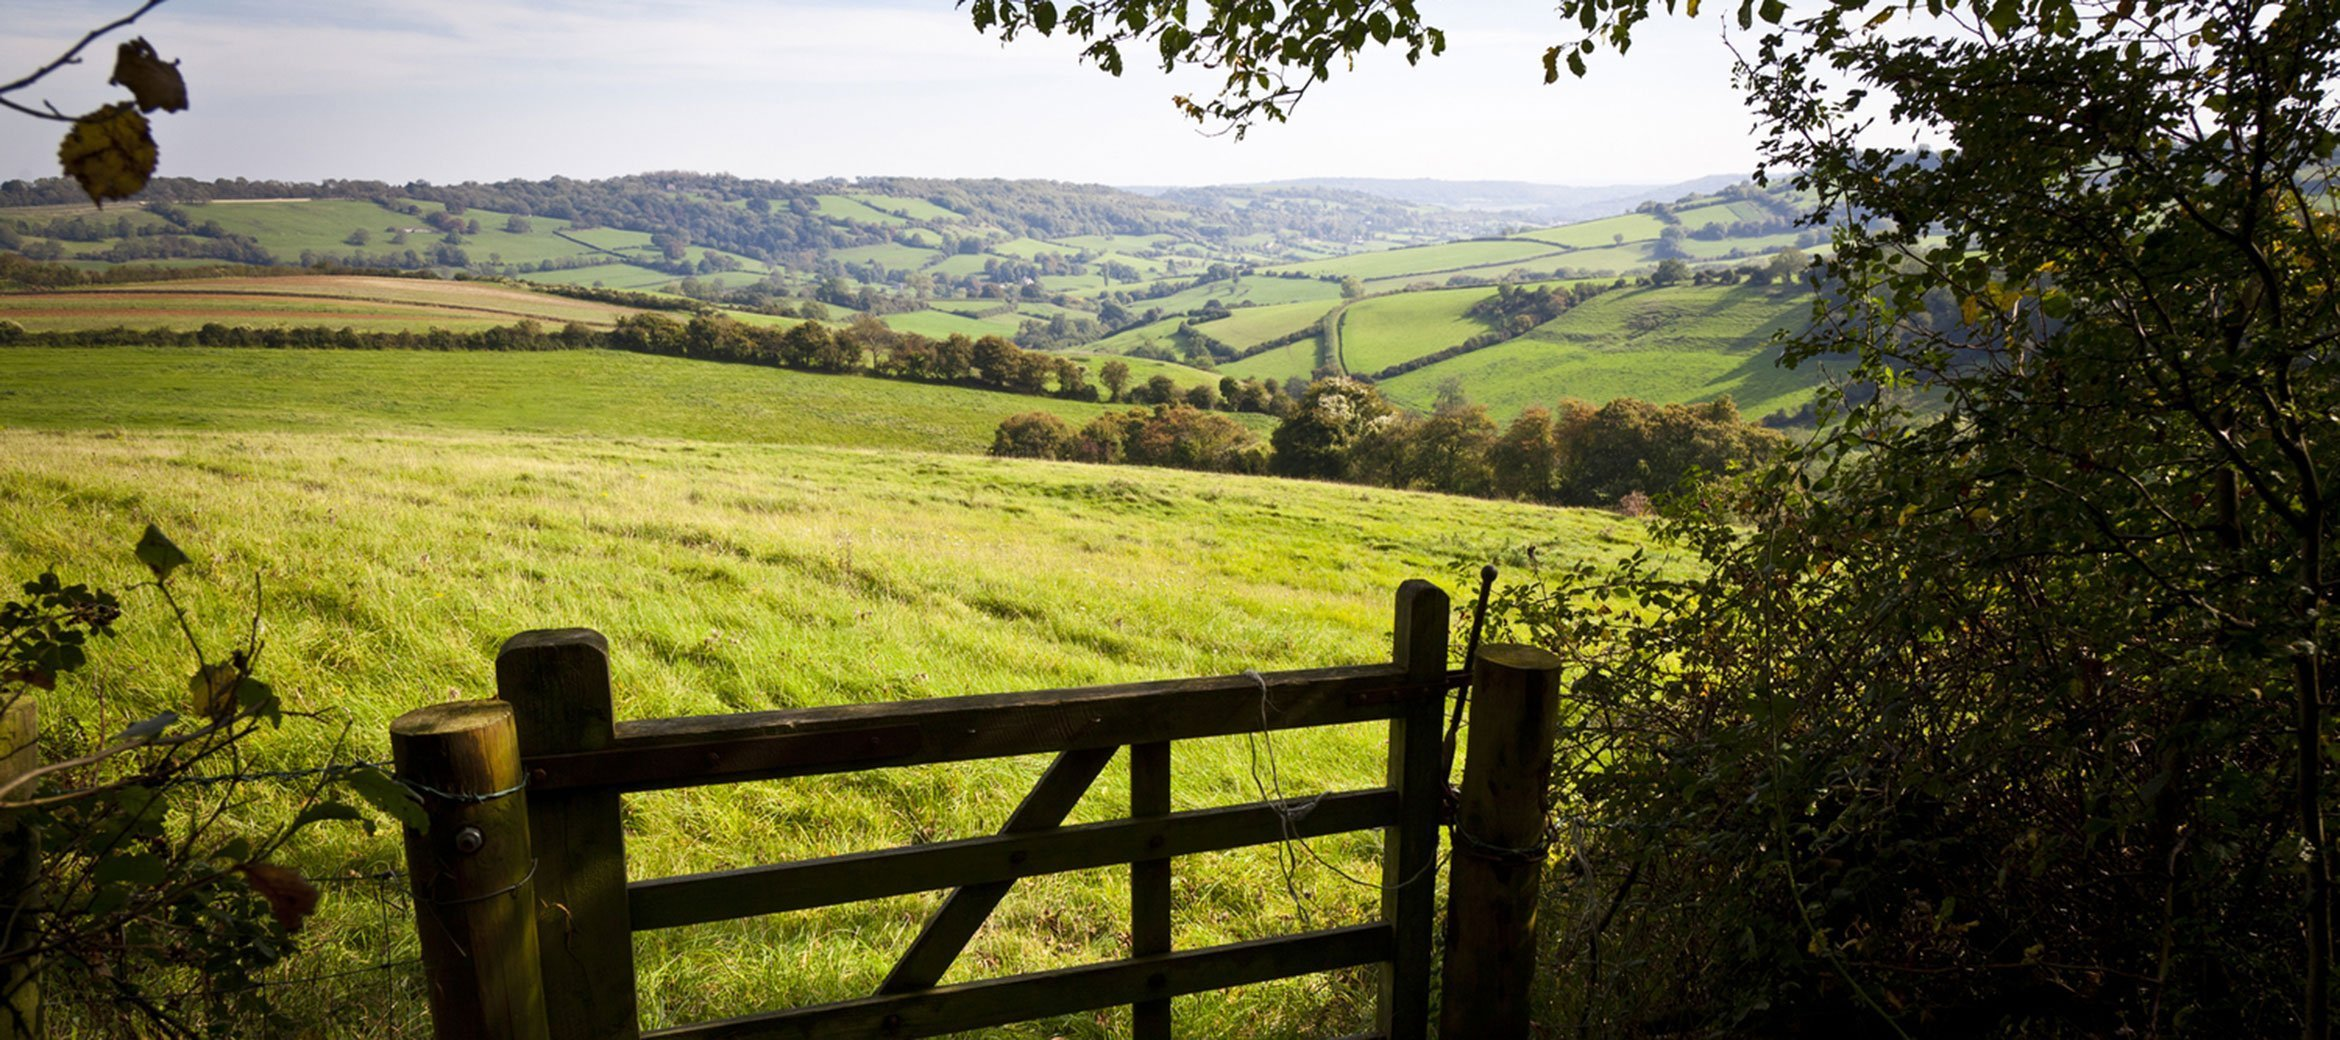 bradley-house-wiltshire-countryside